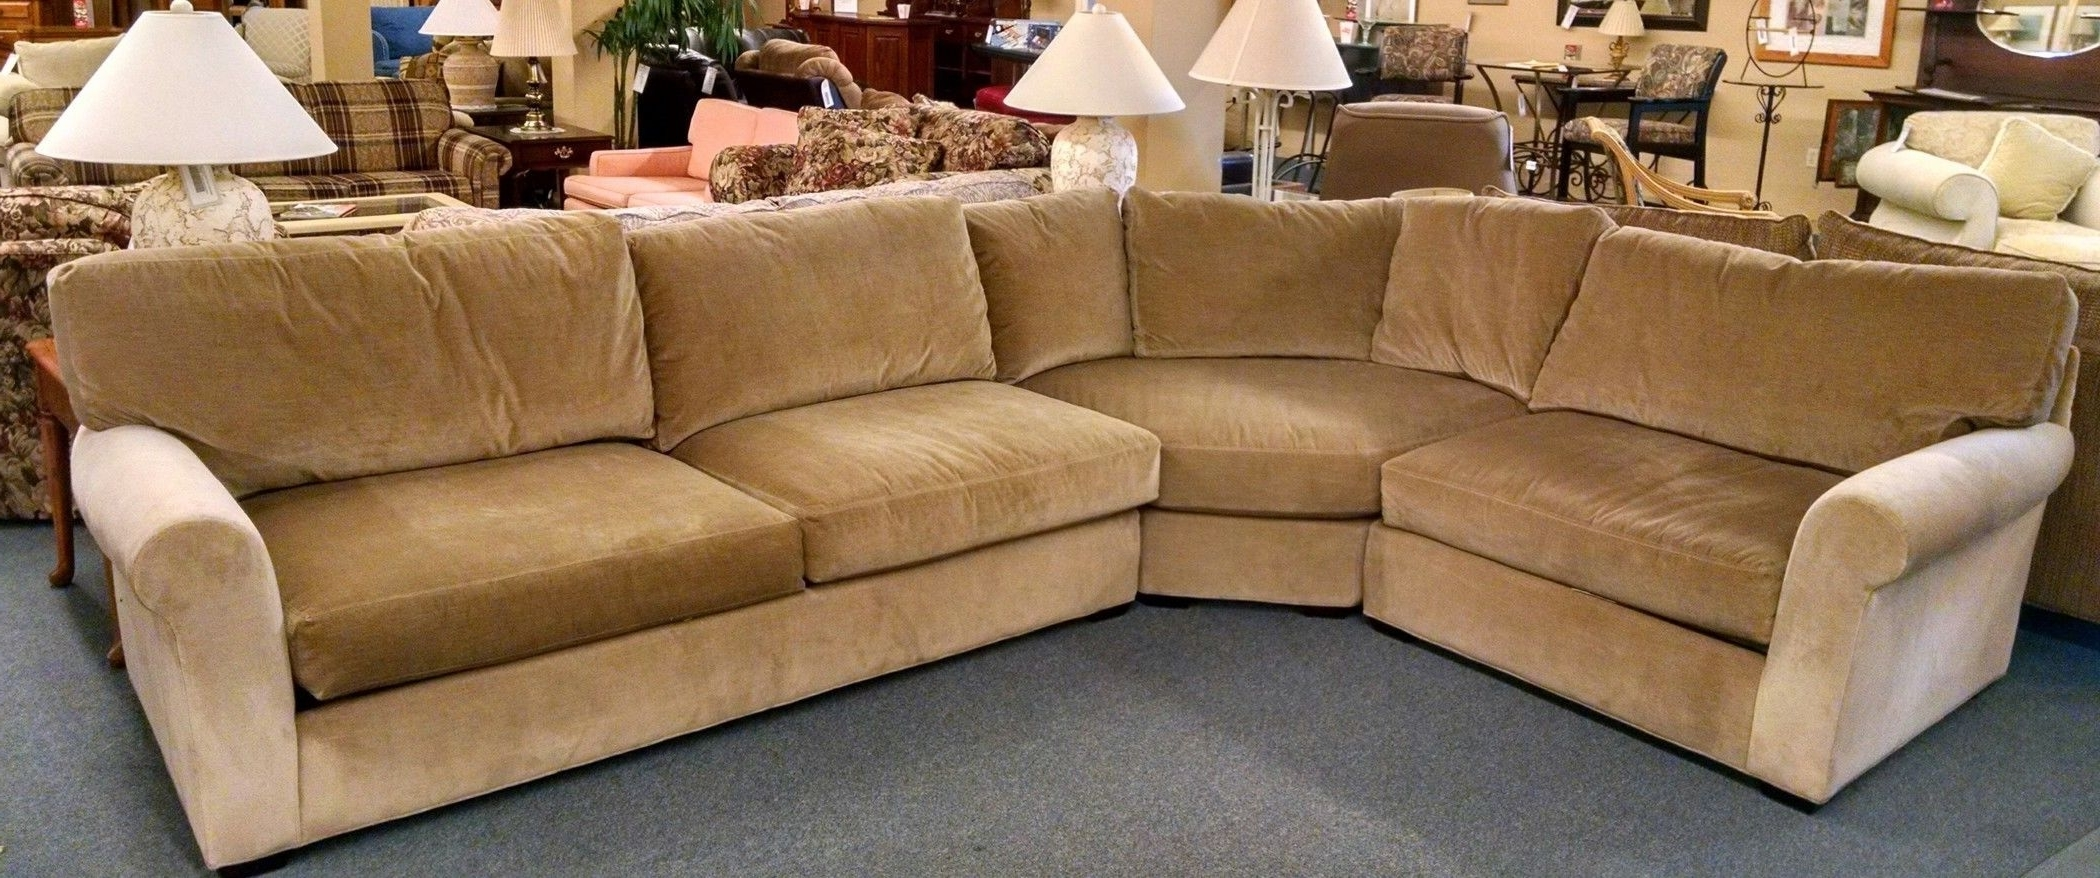 Lee Industries Sectional Sofa (View 8 of 20)